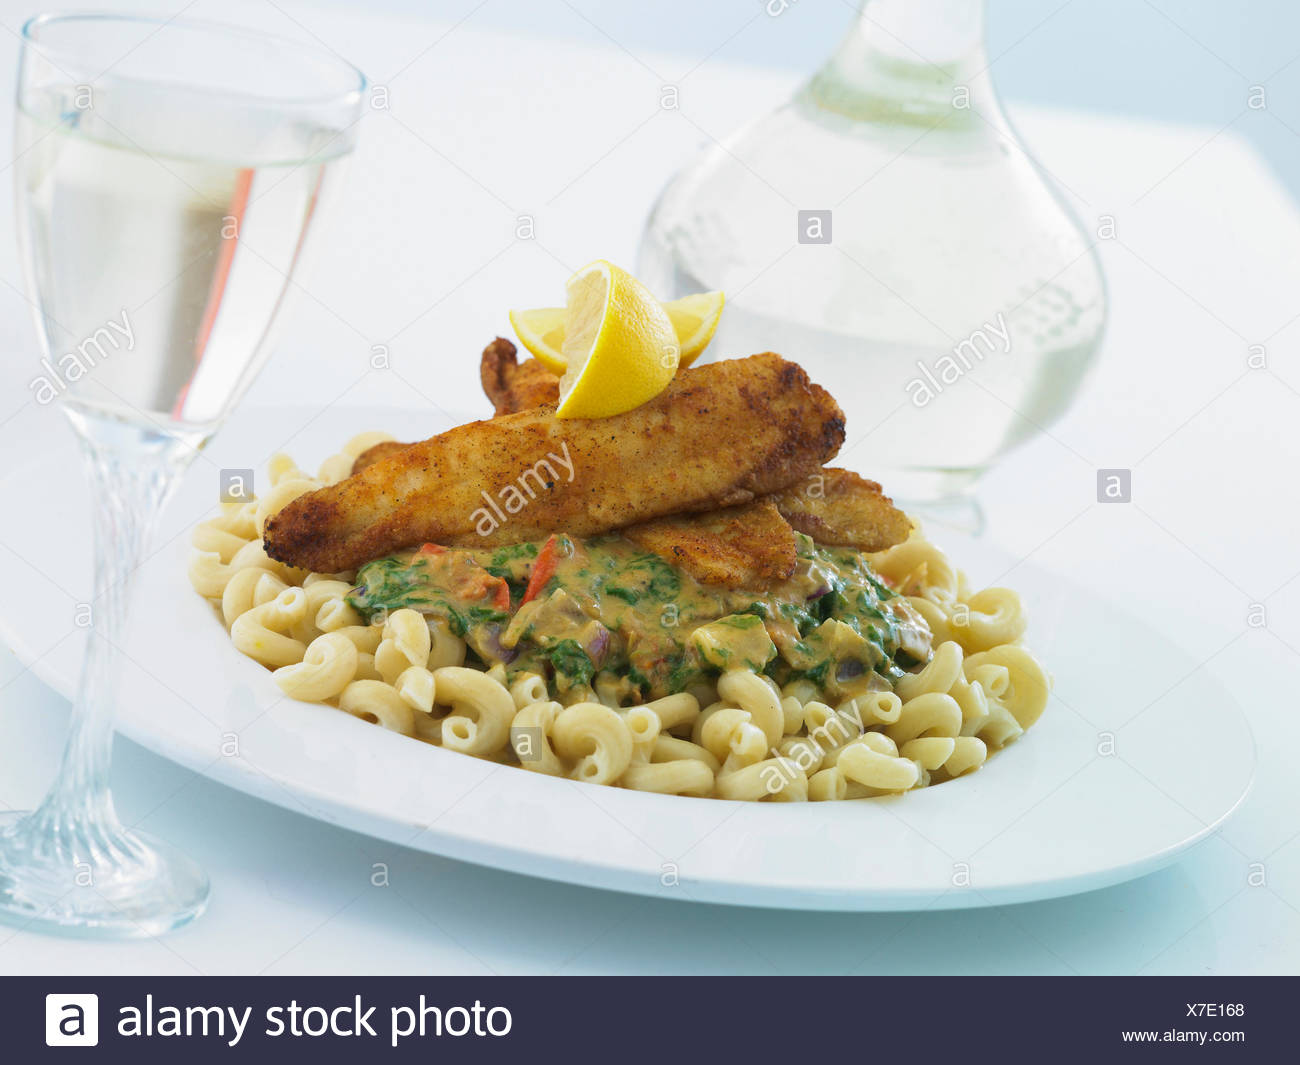 Pasta Twists With Curried Spinach And Fish - Stock Image